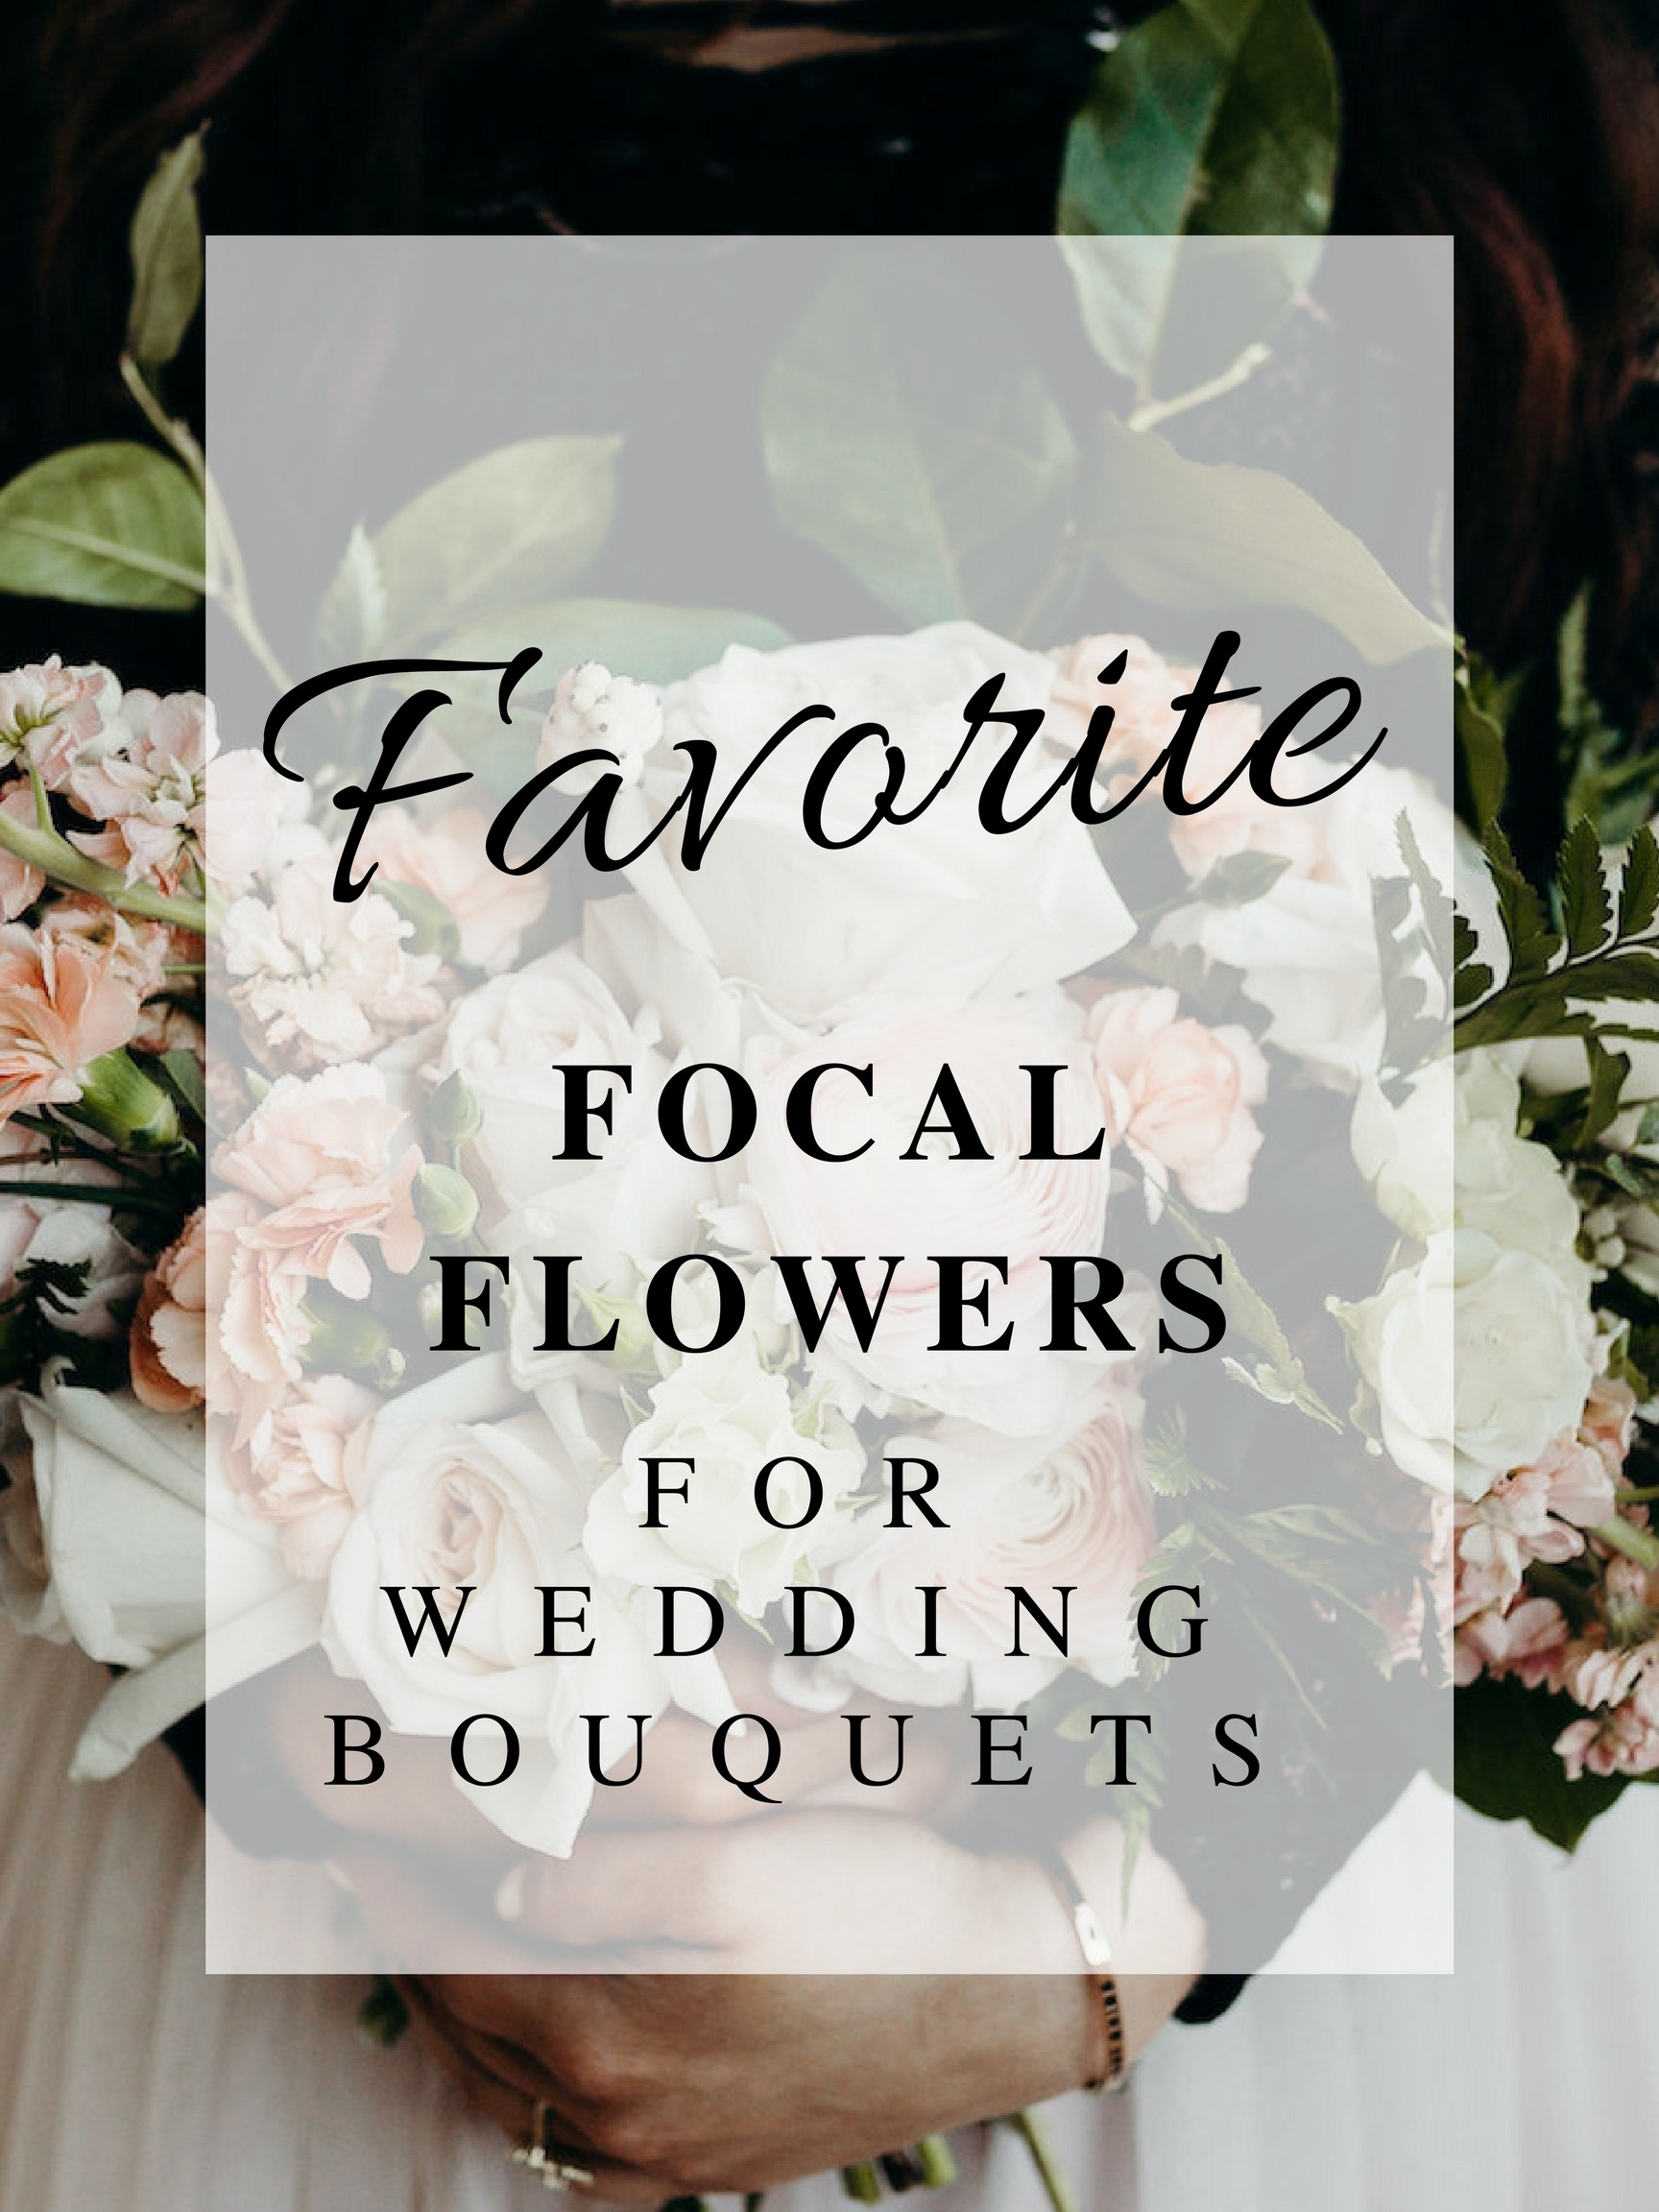 Roots floral favorite focal flowers for bouquets kentucky florist izmirmasajfo